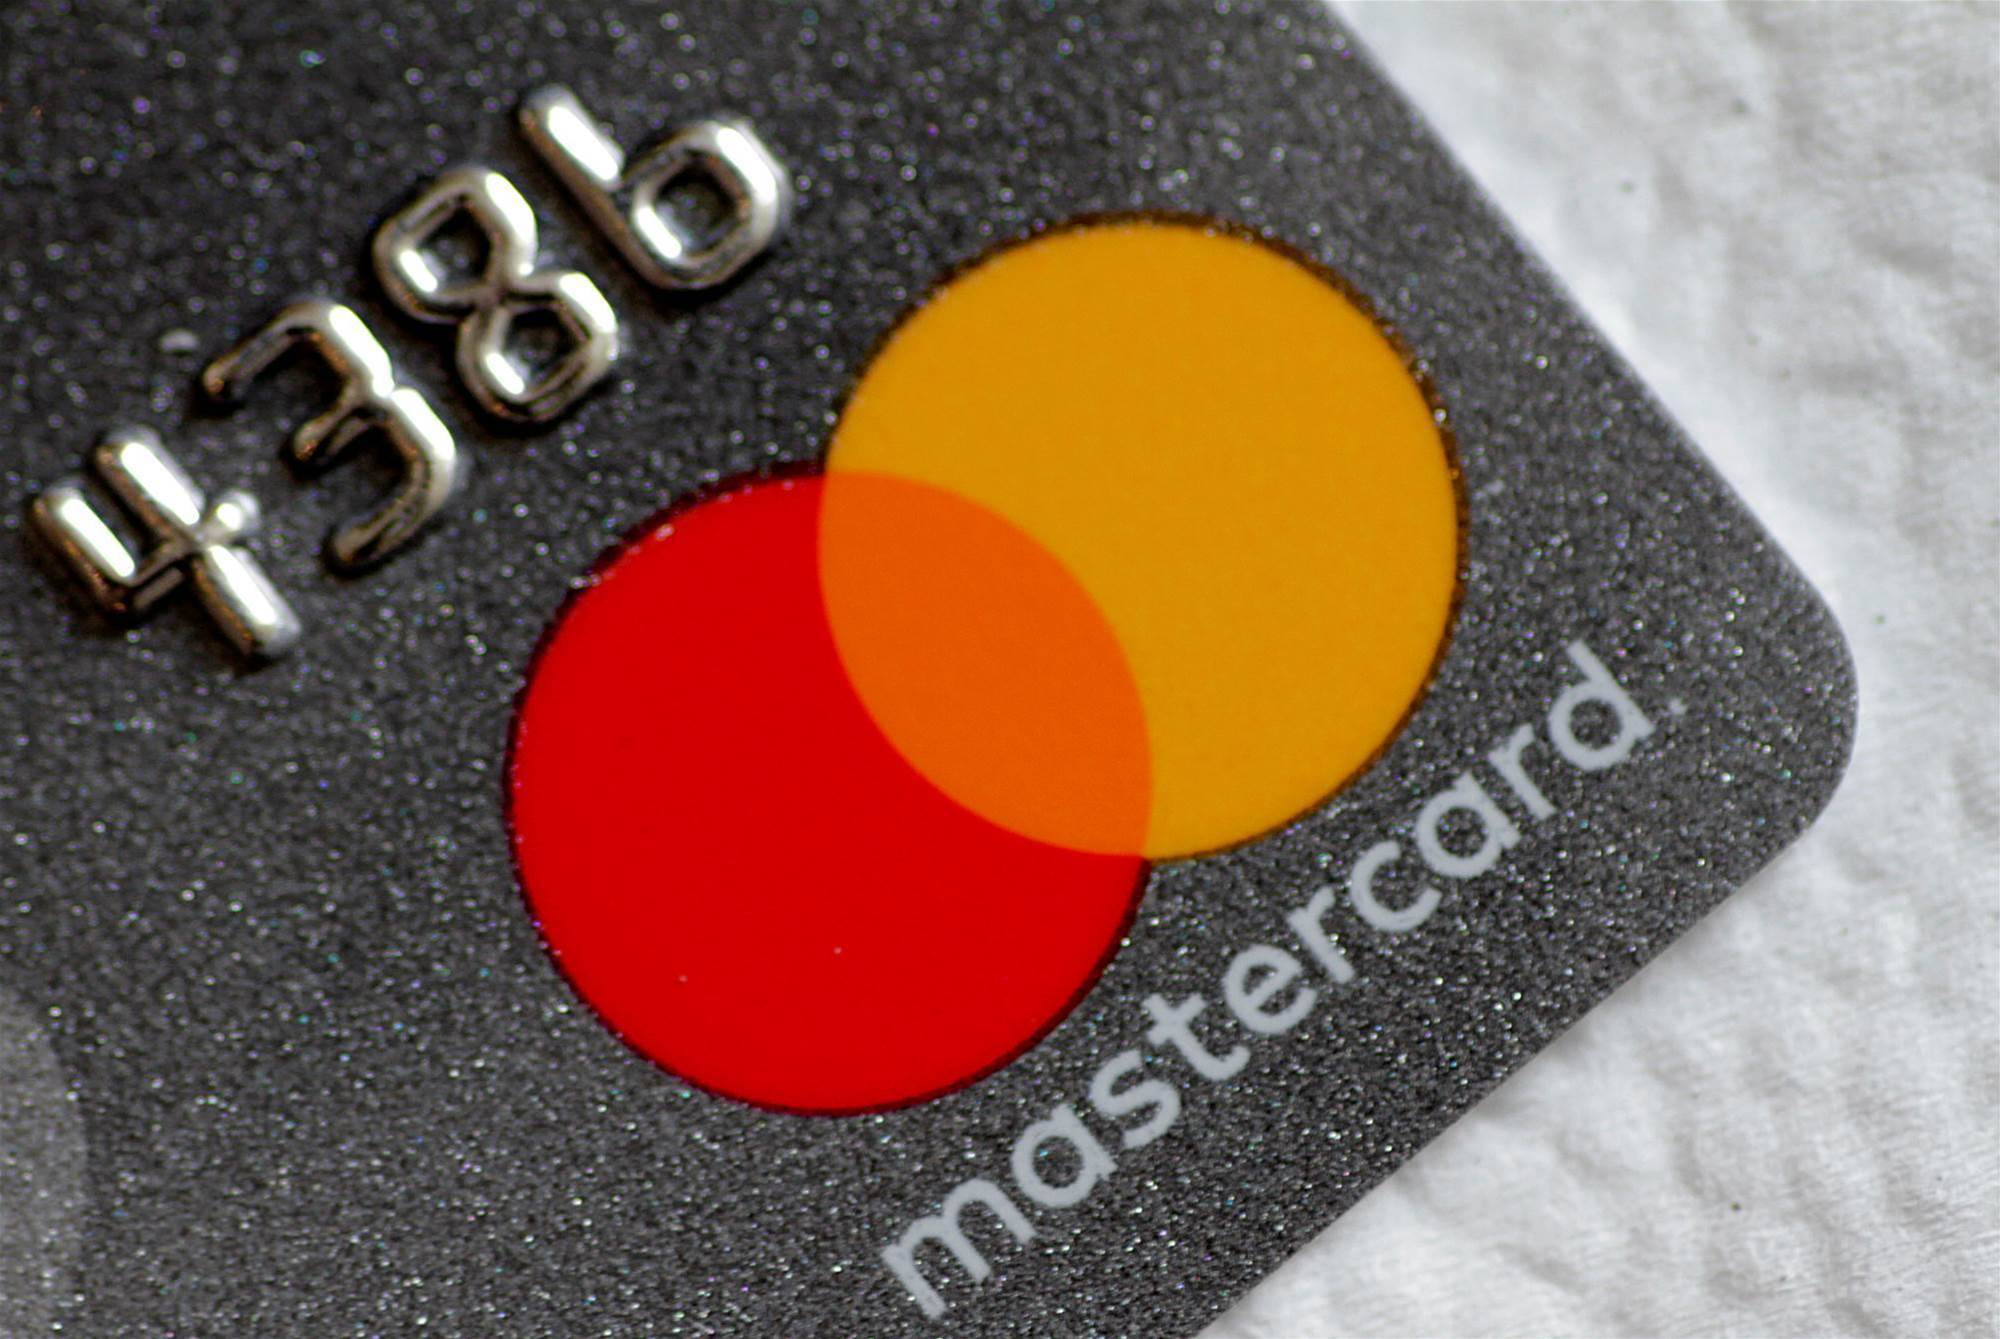 Mastercard lodged U.S. protest over Modi's promotion of Indian card network RuPay